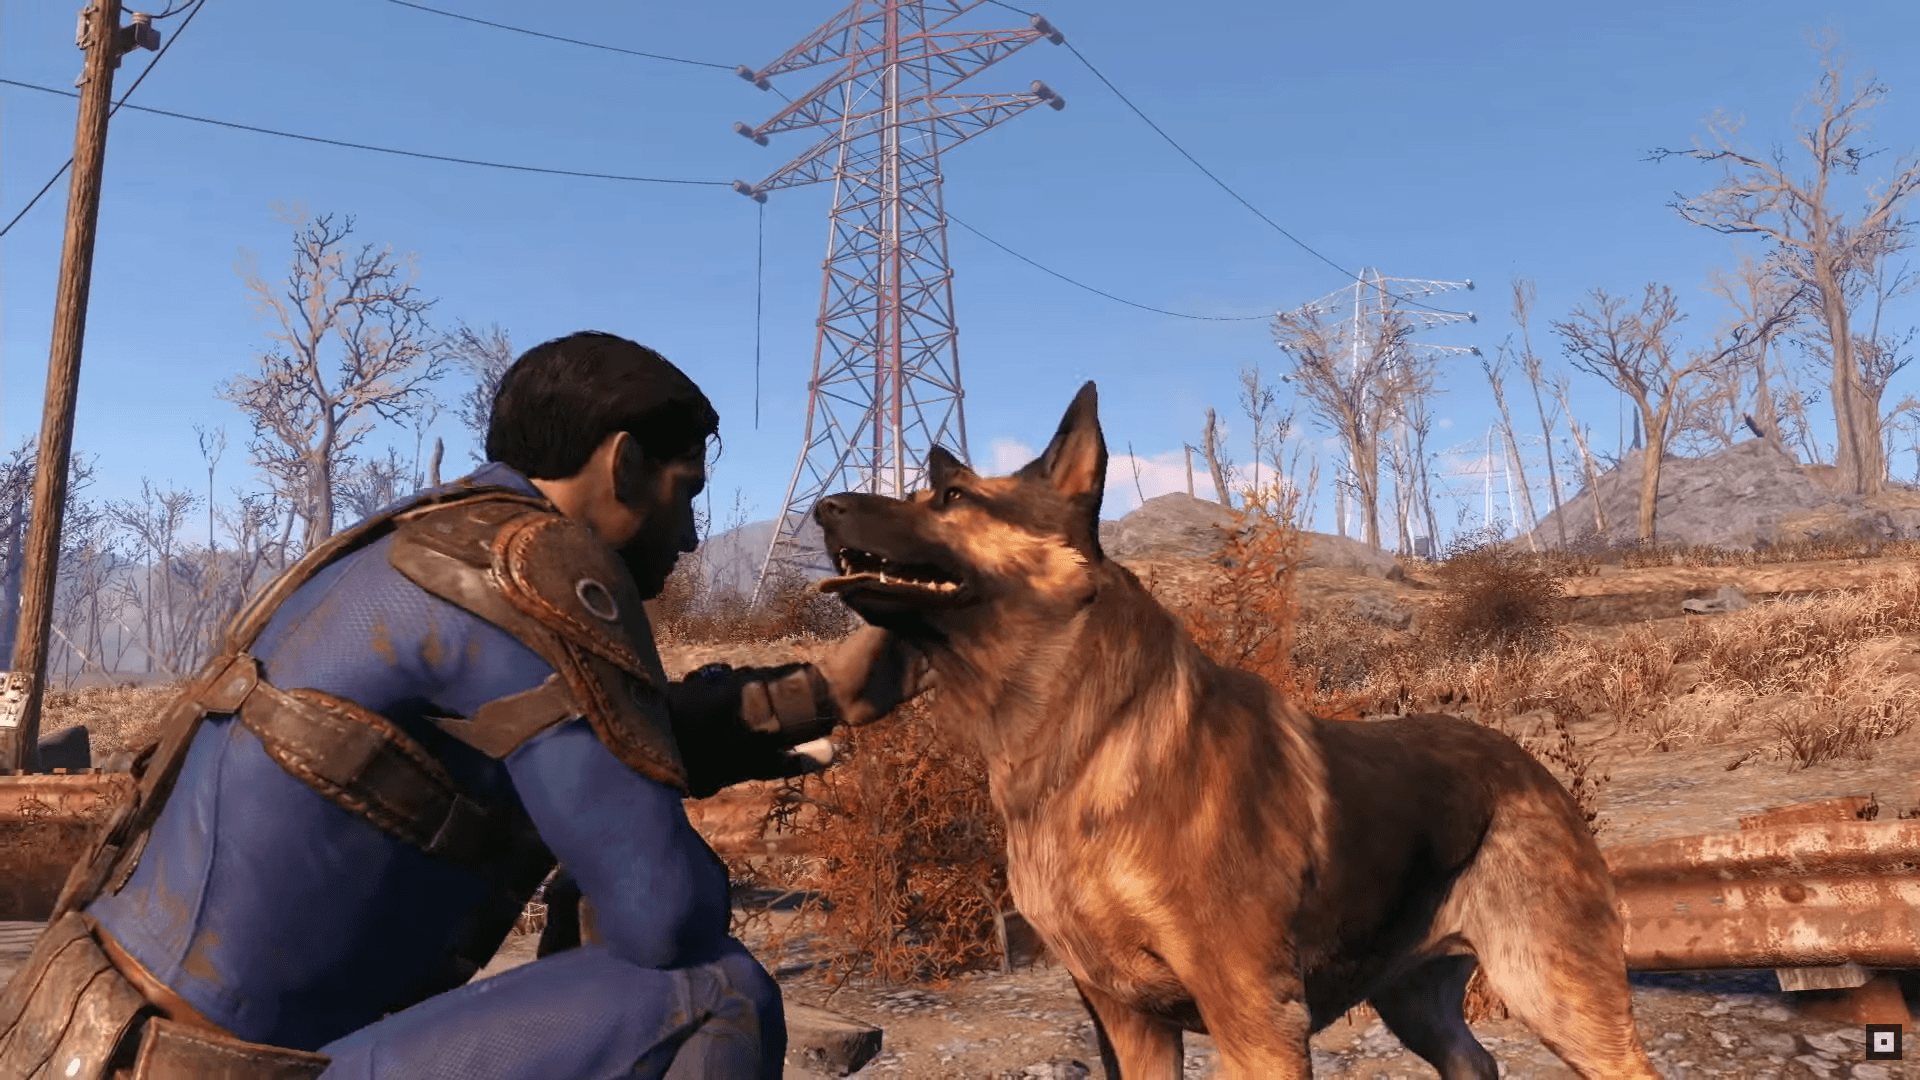 Dog Meat Fallout 4 4K Wallpapers - Top Free Dog Meat Fallout